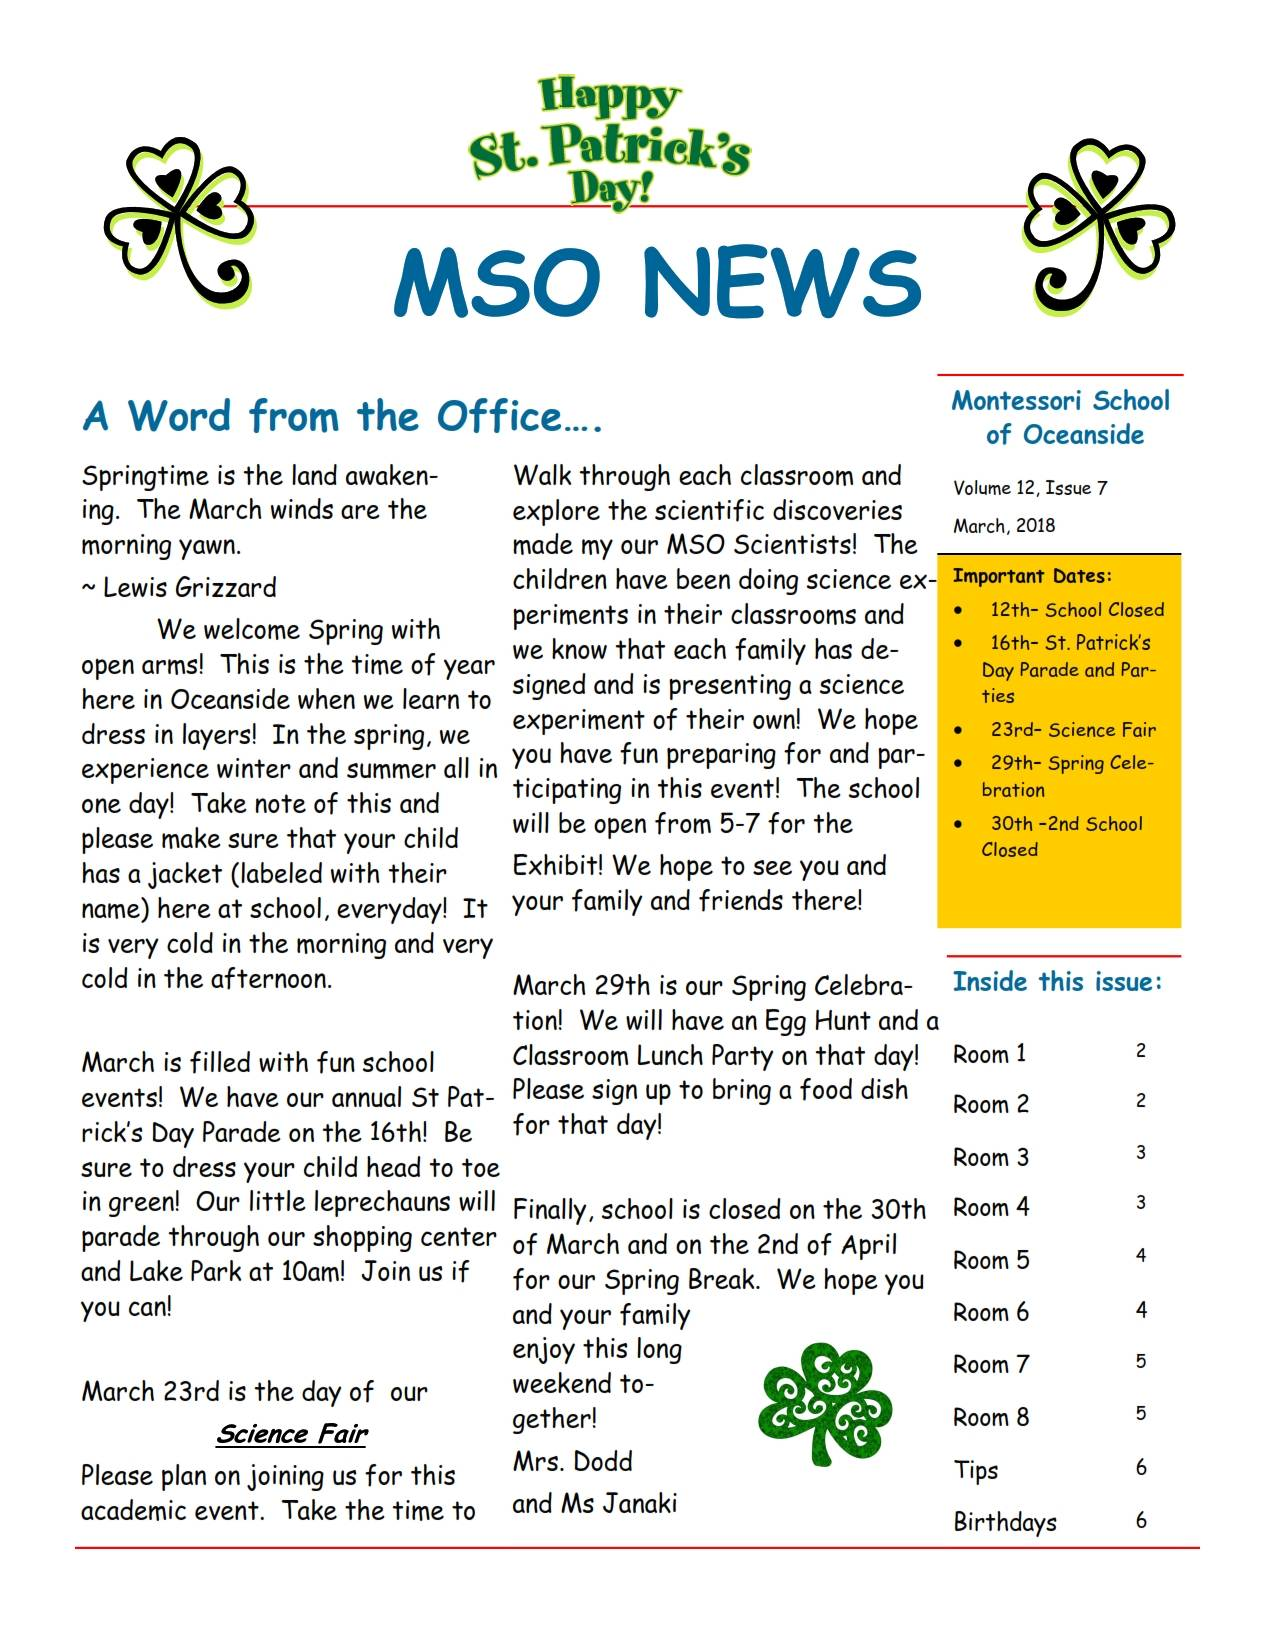 MSO March 2018 Newsletter. A Word from the Office